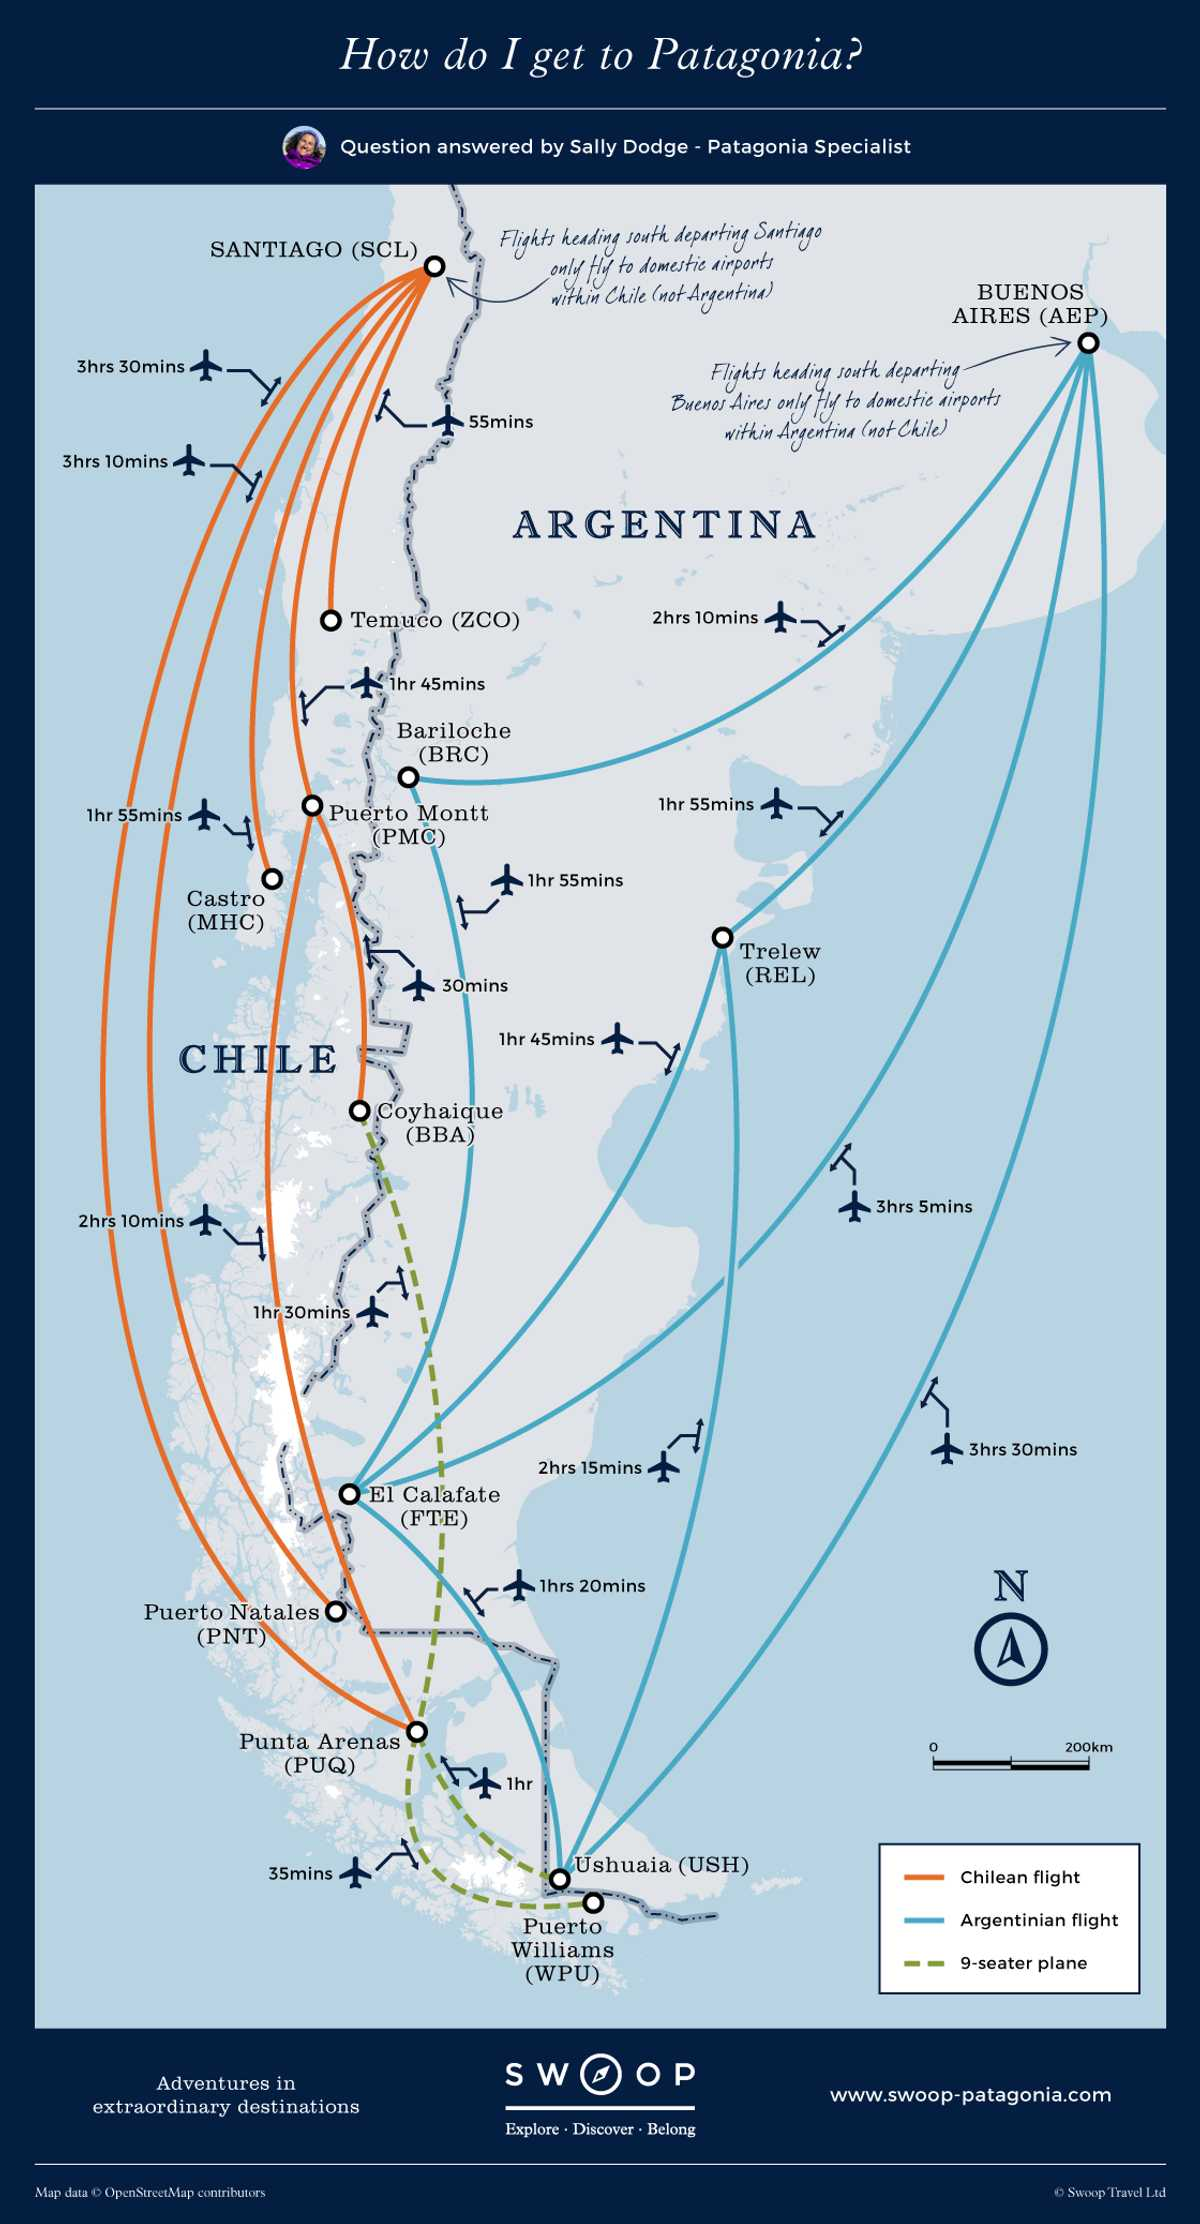 How-do-I-get-to-Patagonia